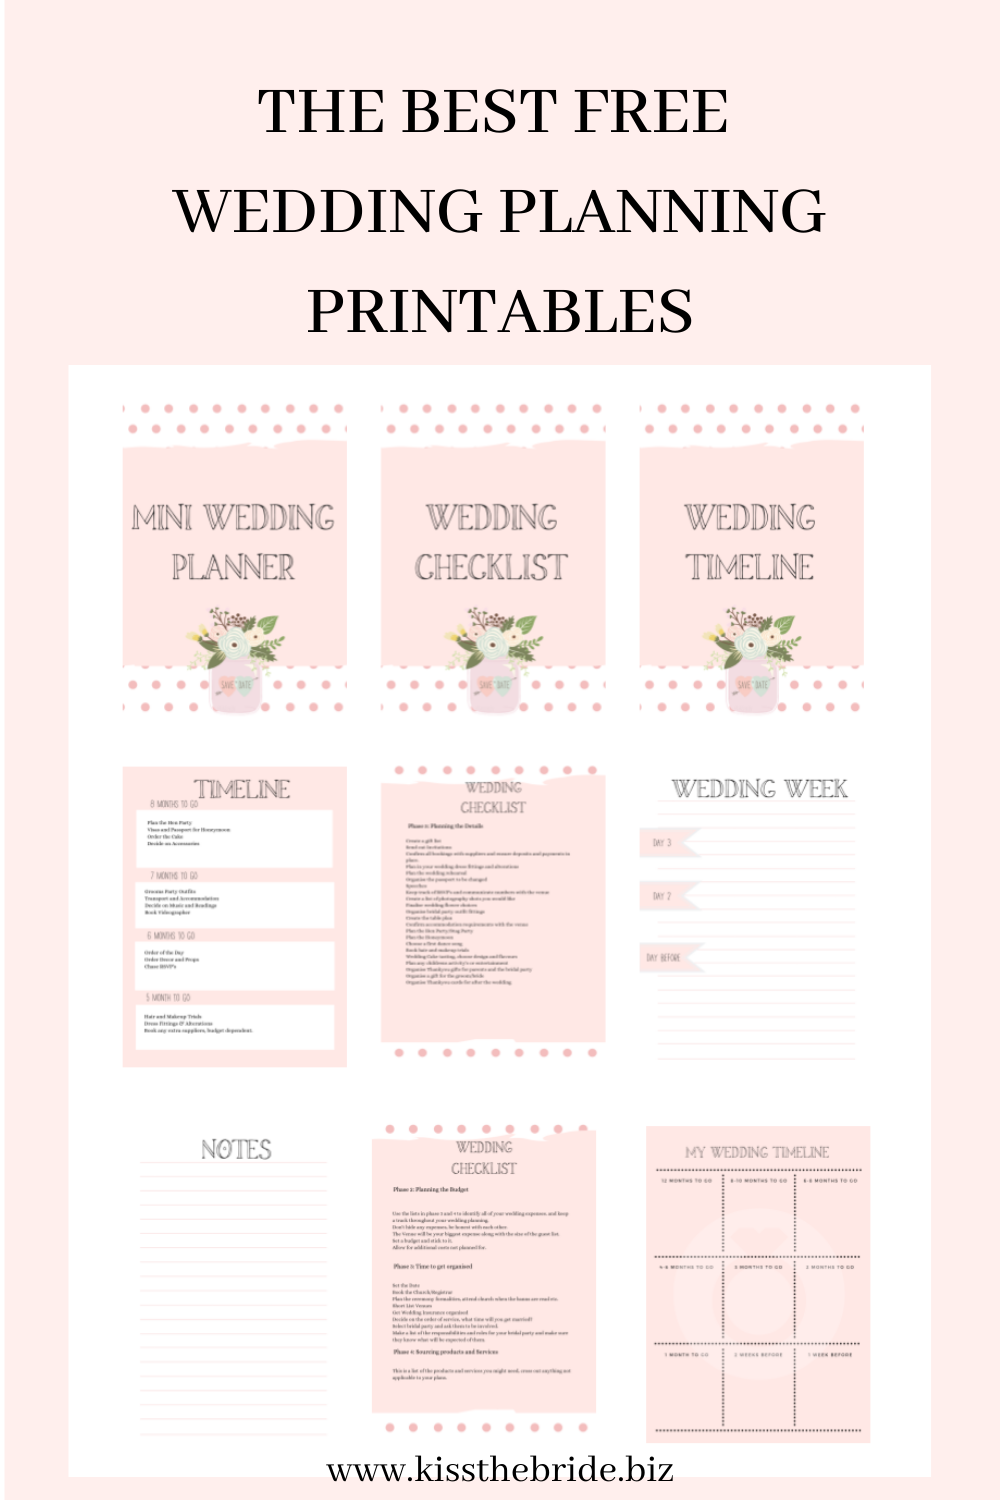 Wedding planning printable